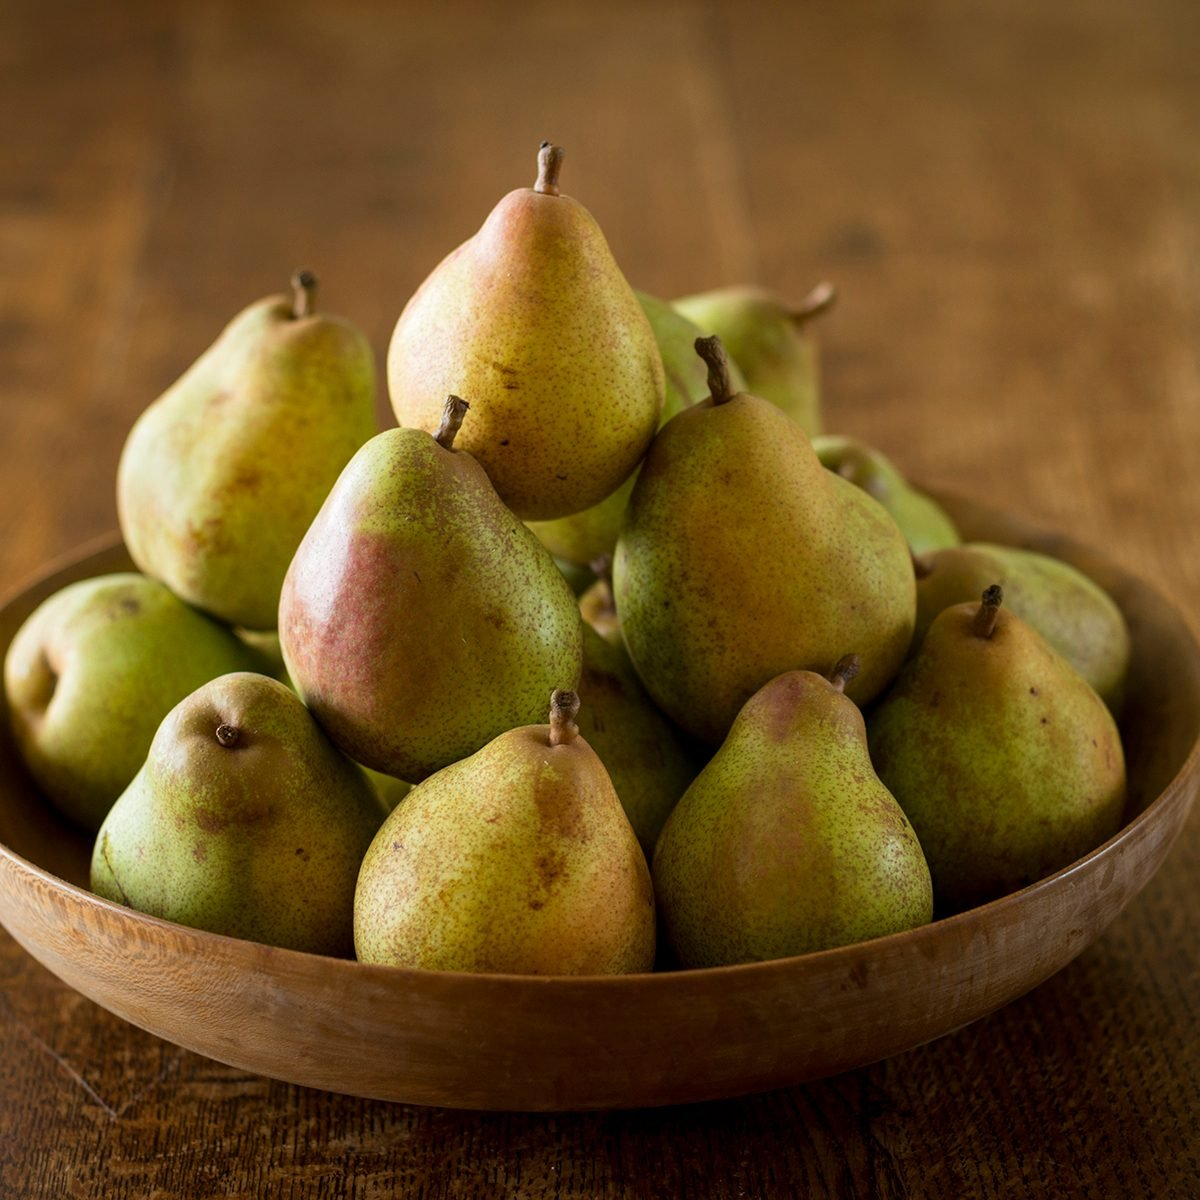 Comice pears in a bowl.